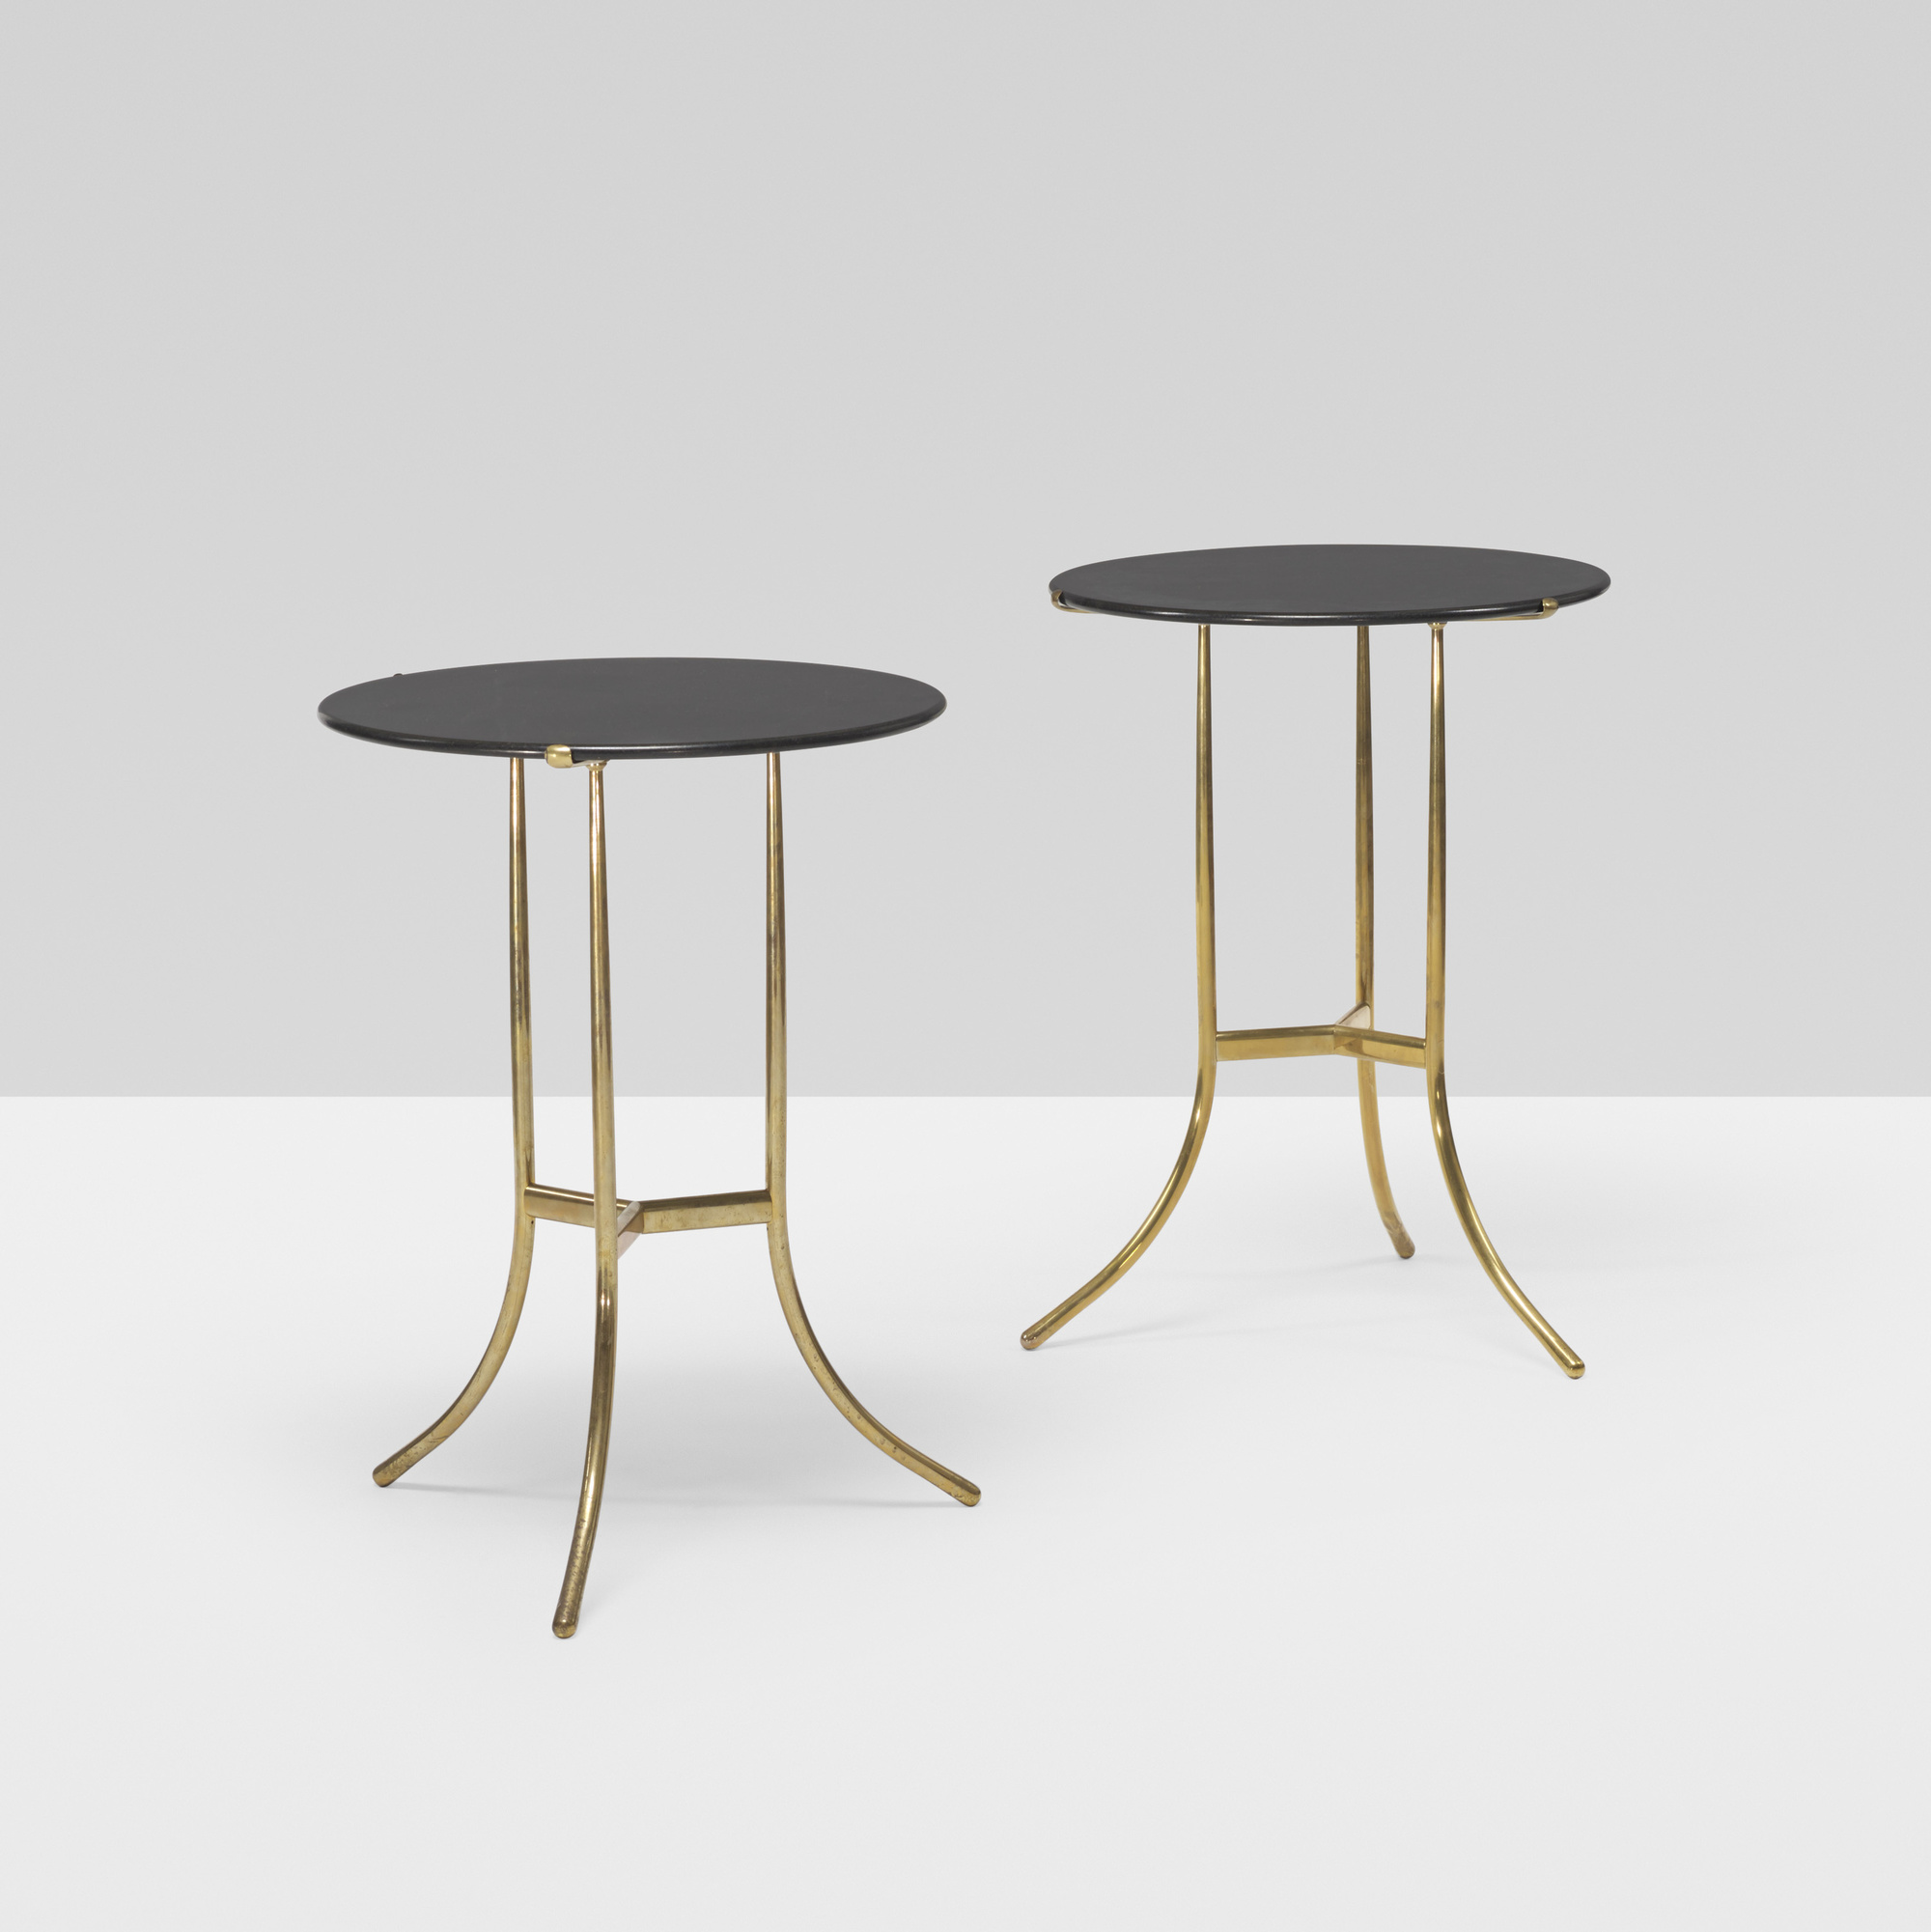 393: Cedric Hartman / occasional tables, pair (1 of 3)